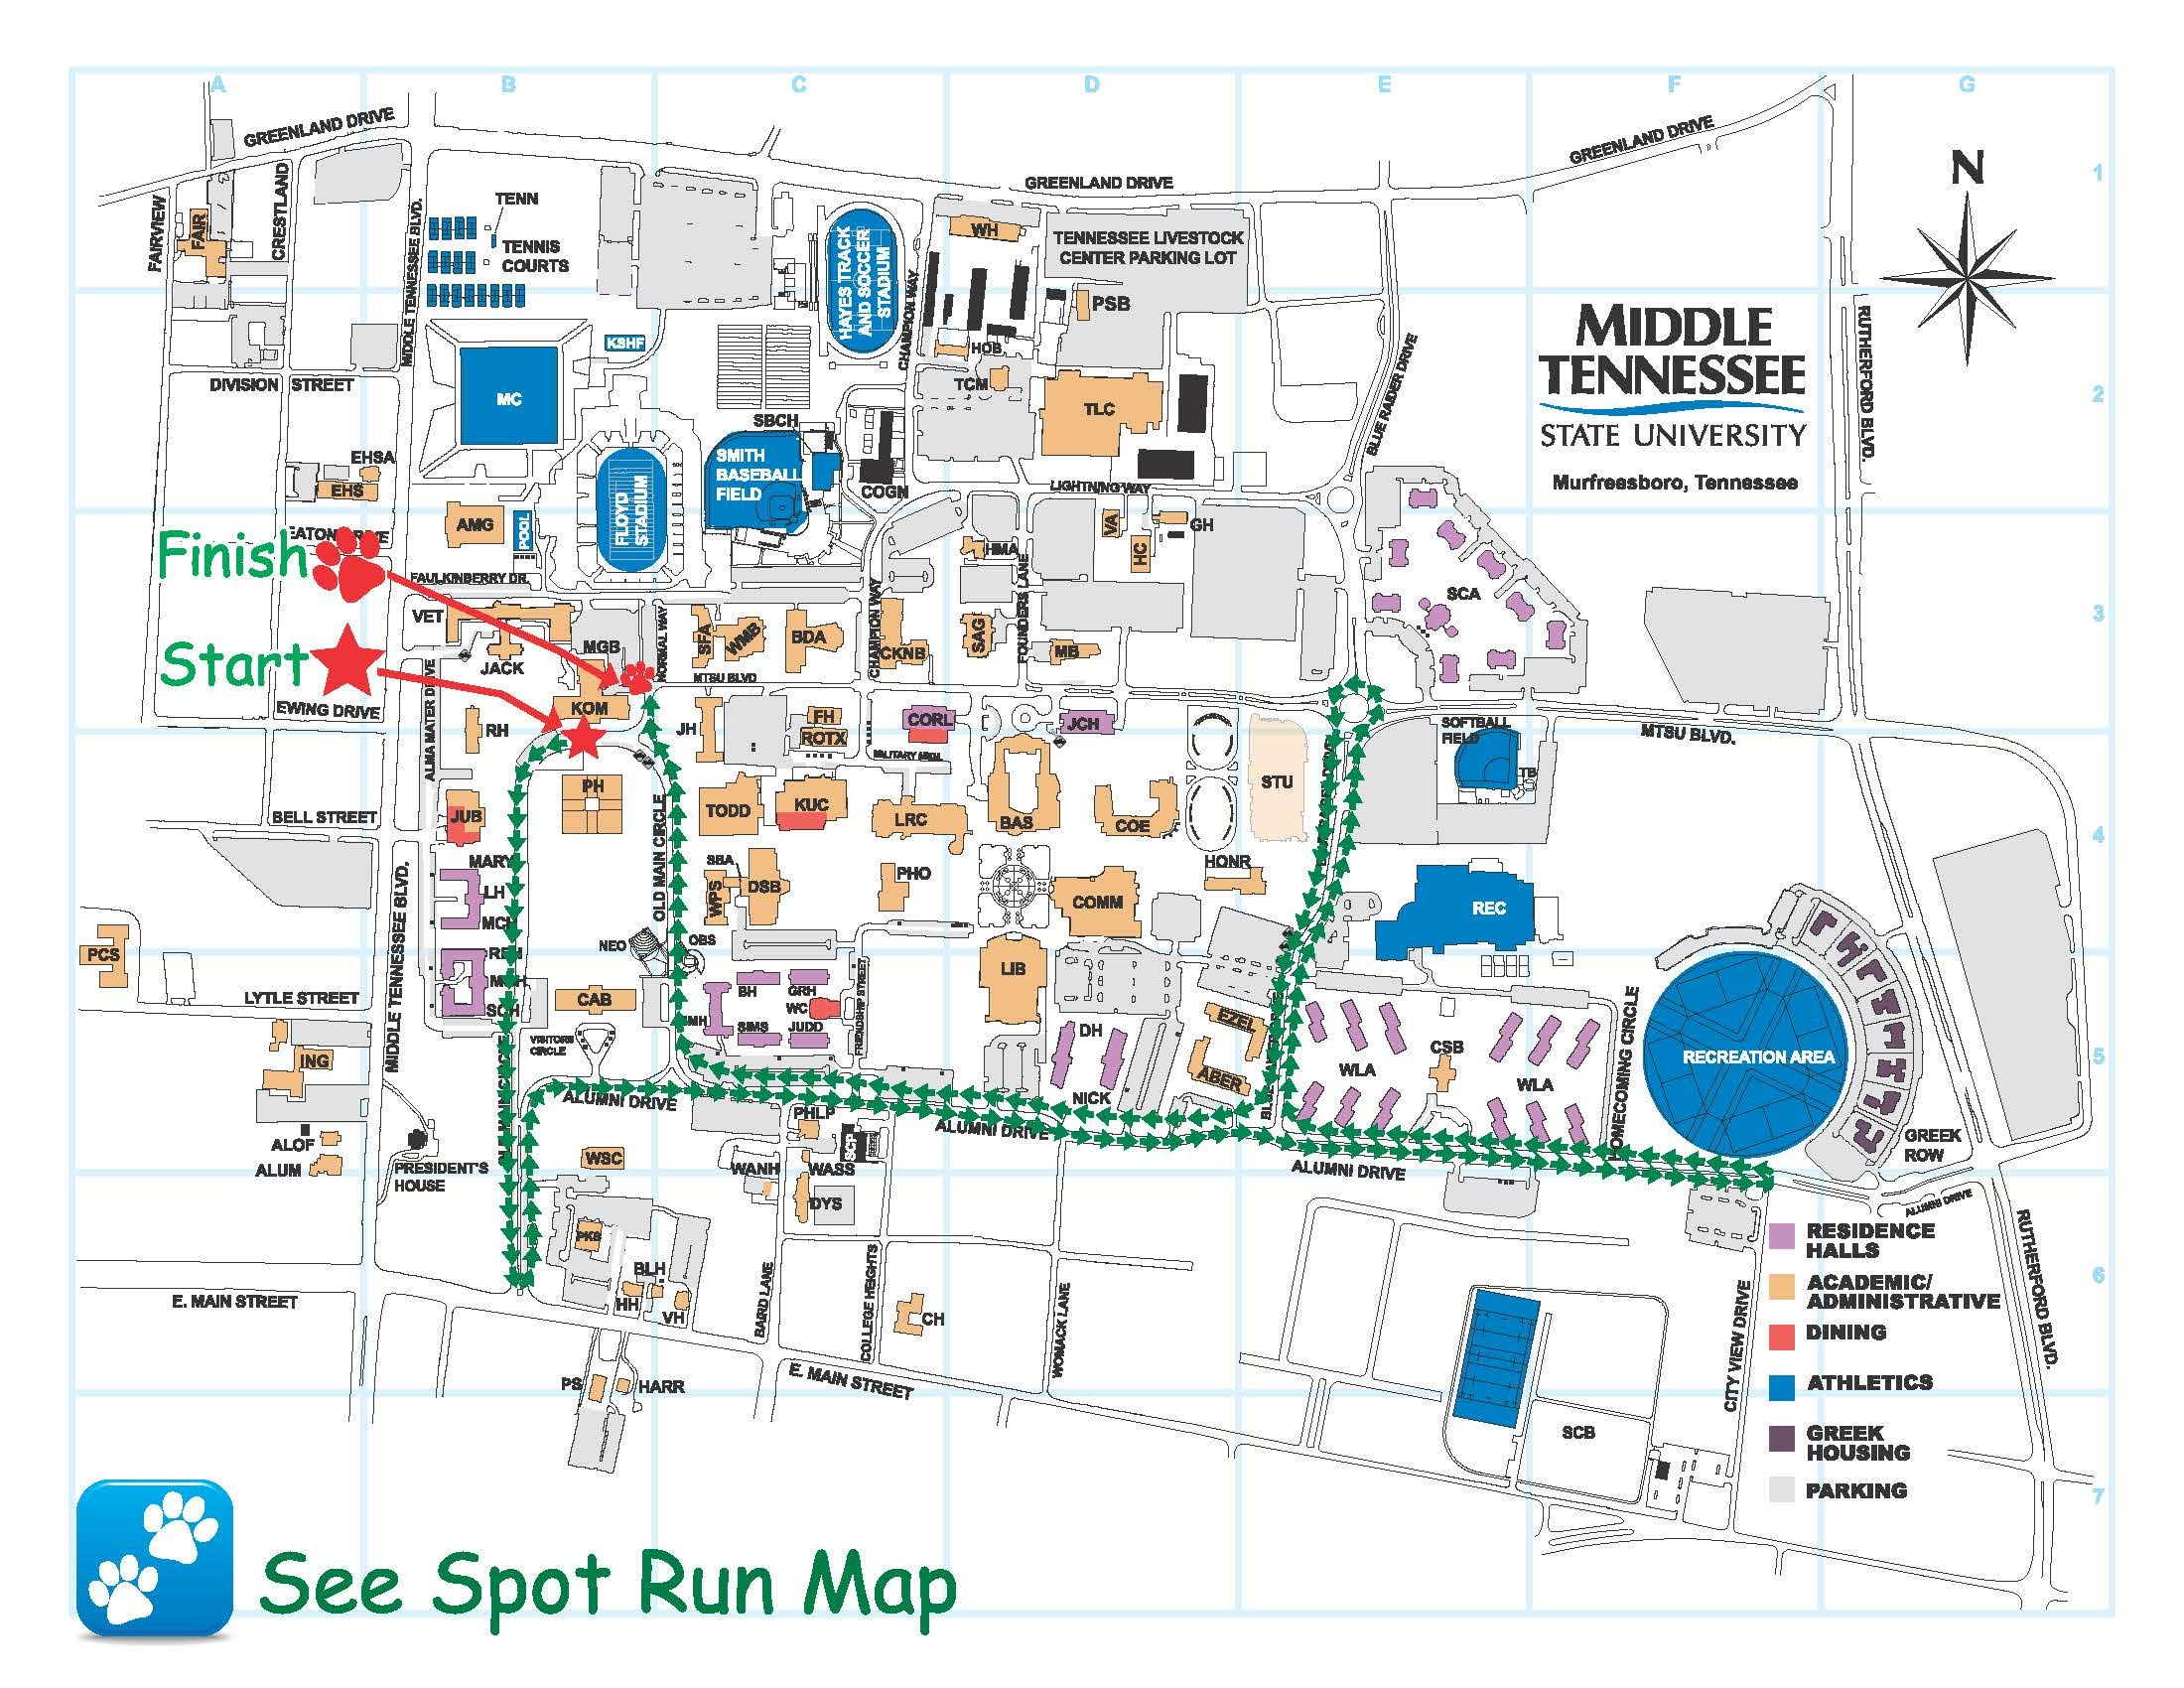 MTSU's Campus MAp | college | Pinterest | College, Campus map and Dorm